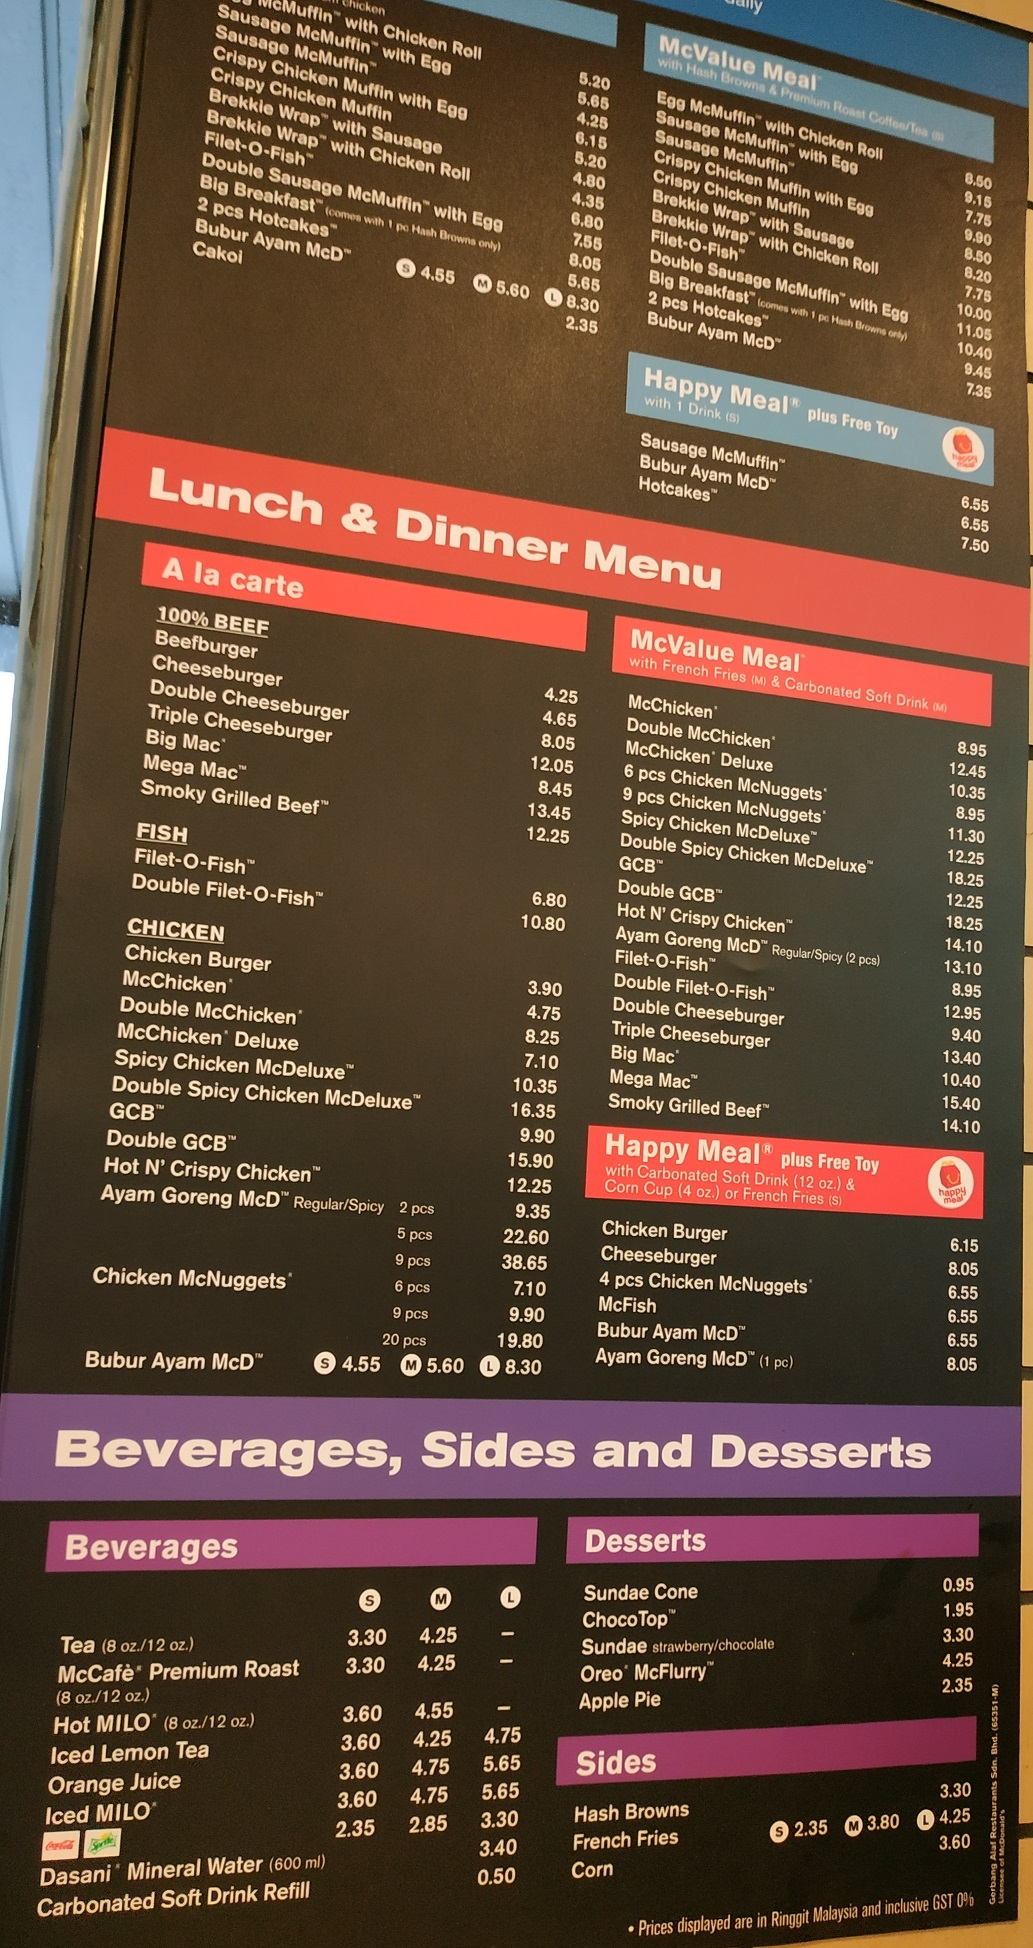 Mcdonalds malaysia menu price and calorie contents visit malaysia mcdonalds malaysia menu as of july 2018 with no gst altavistaventures Gallery